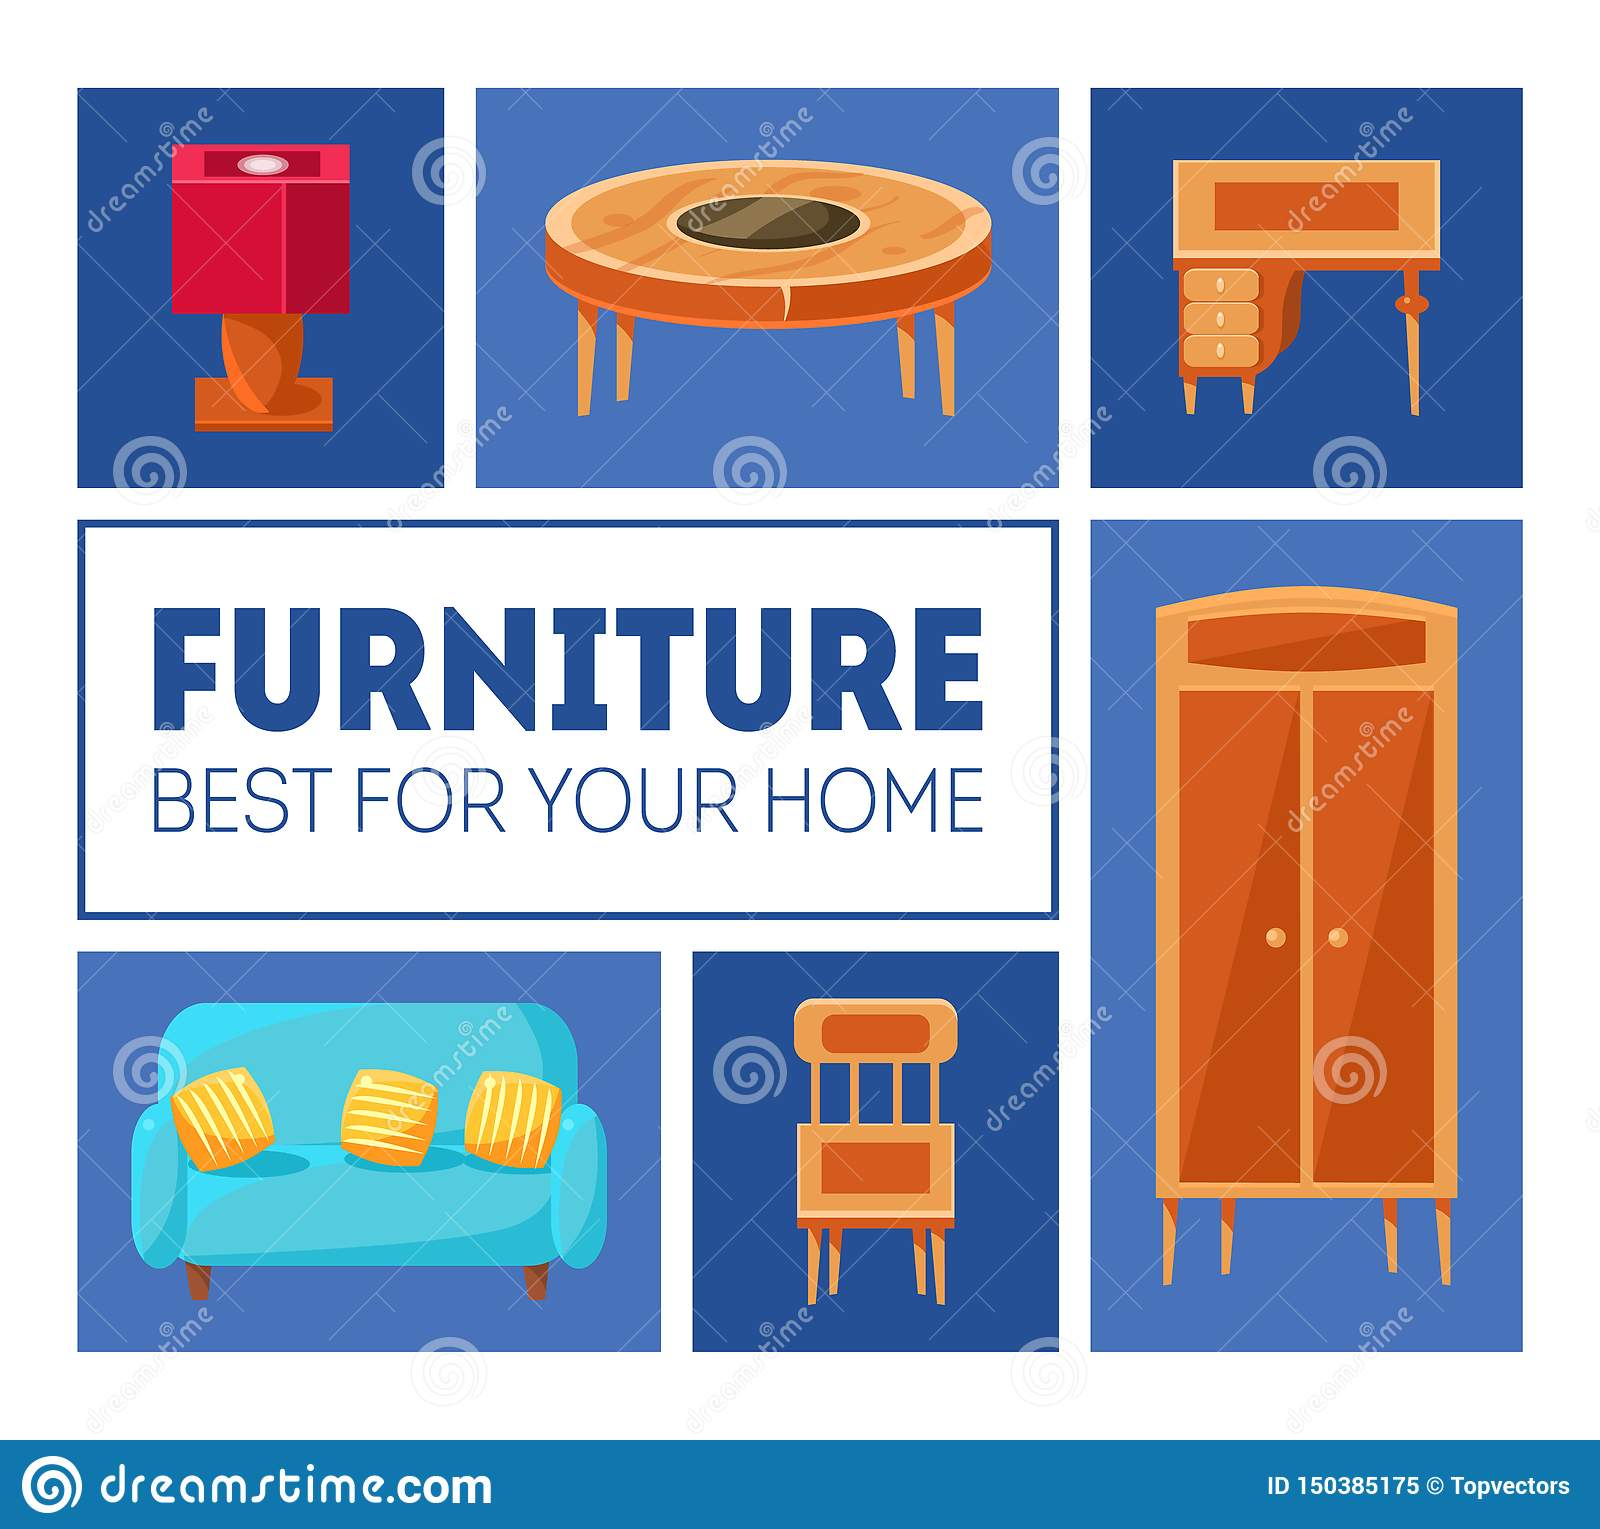 Furniture Banner Template. Best For Your Home. Interior Poster With Living Room Furniture. Vector Illustration Stock Vector - Illustration of best ...